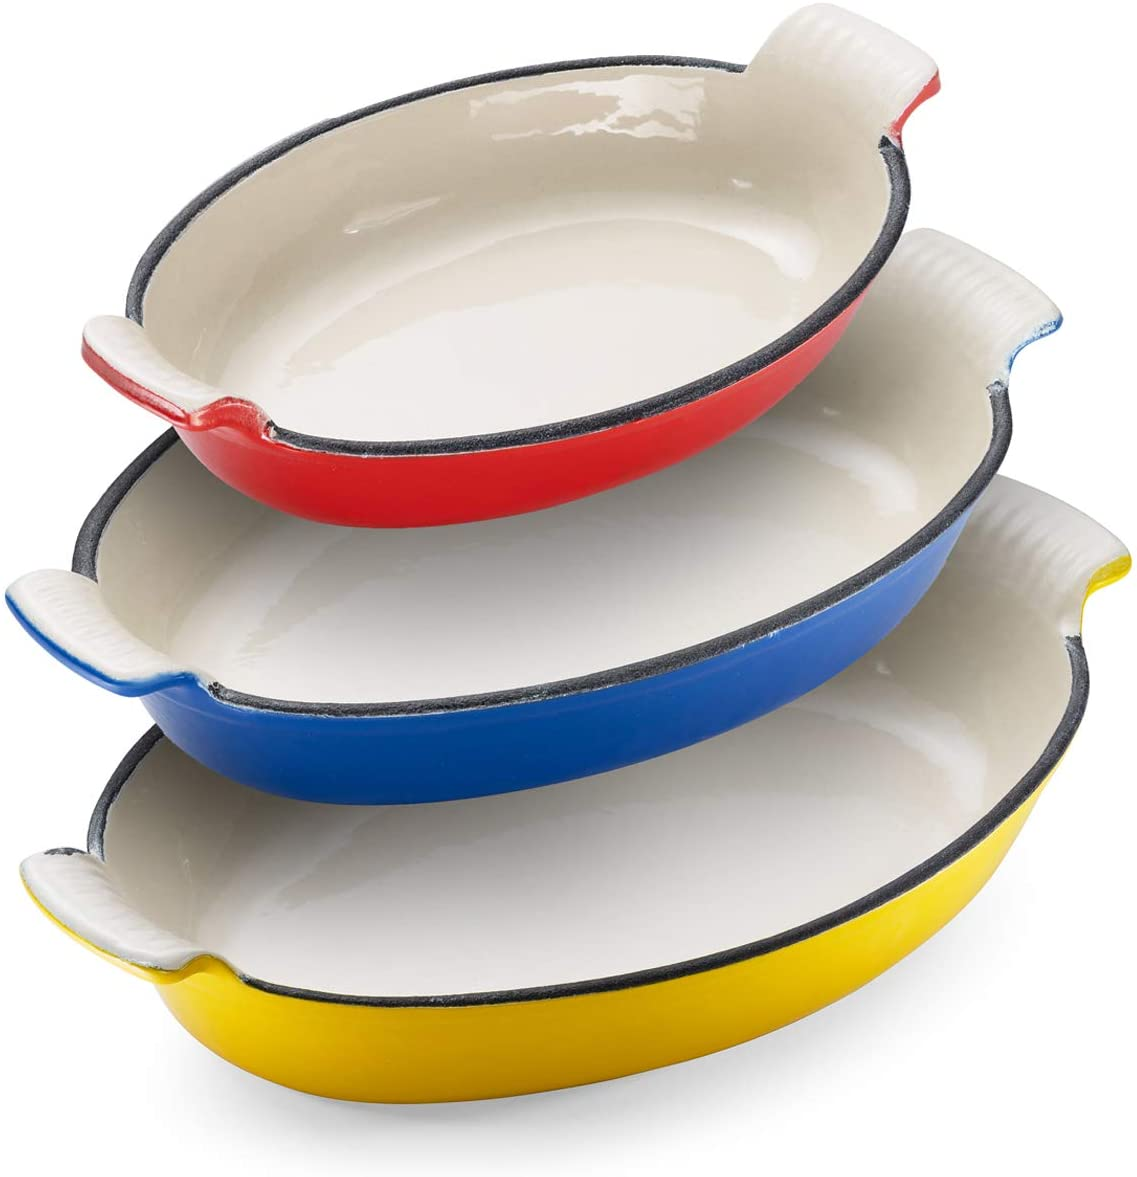 Klee Enameled Cast Iron Pan | Lasagna Pan, Large Roasting Pan, Casserole Dishes for the Oven | Oval Casserole Dish Set of 3